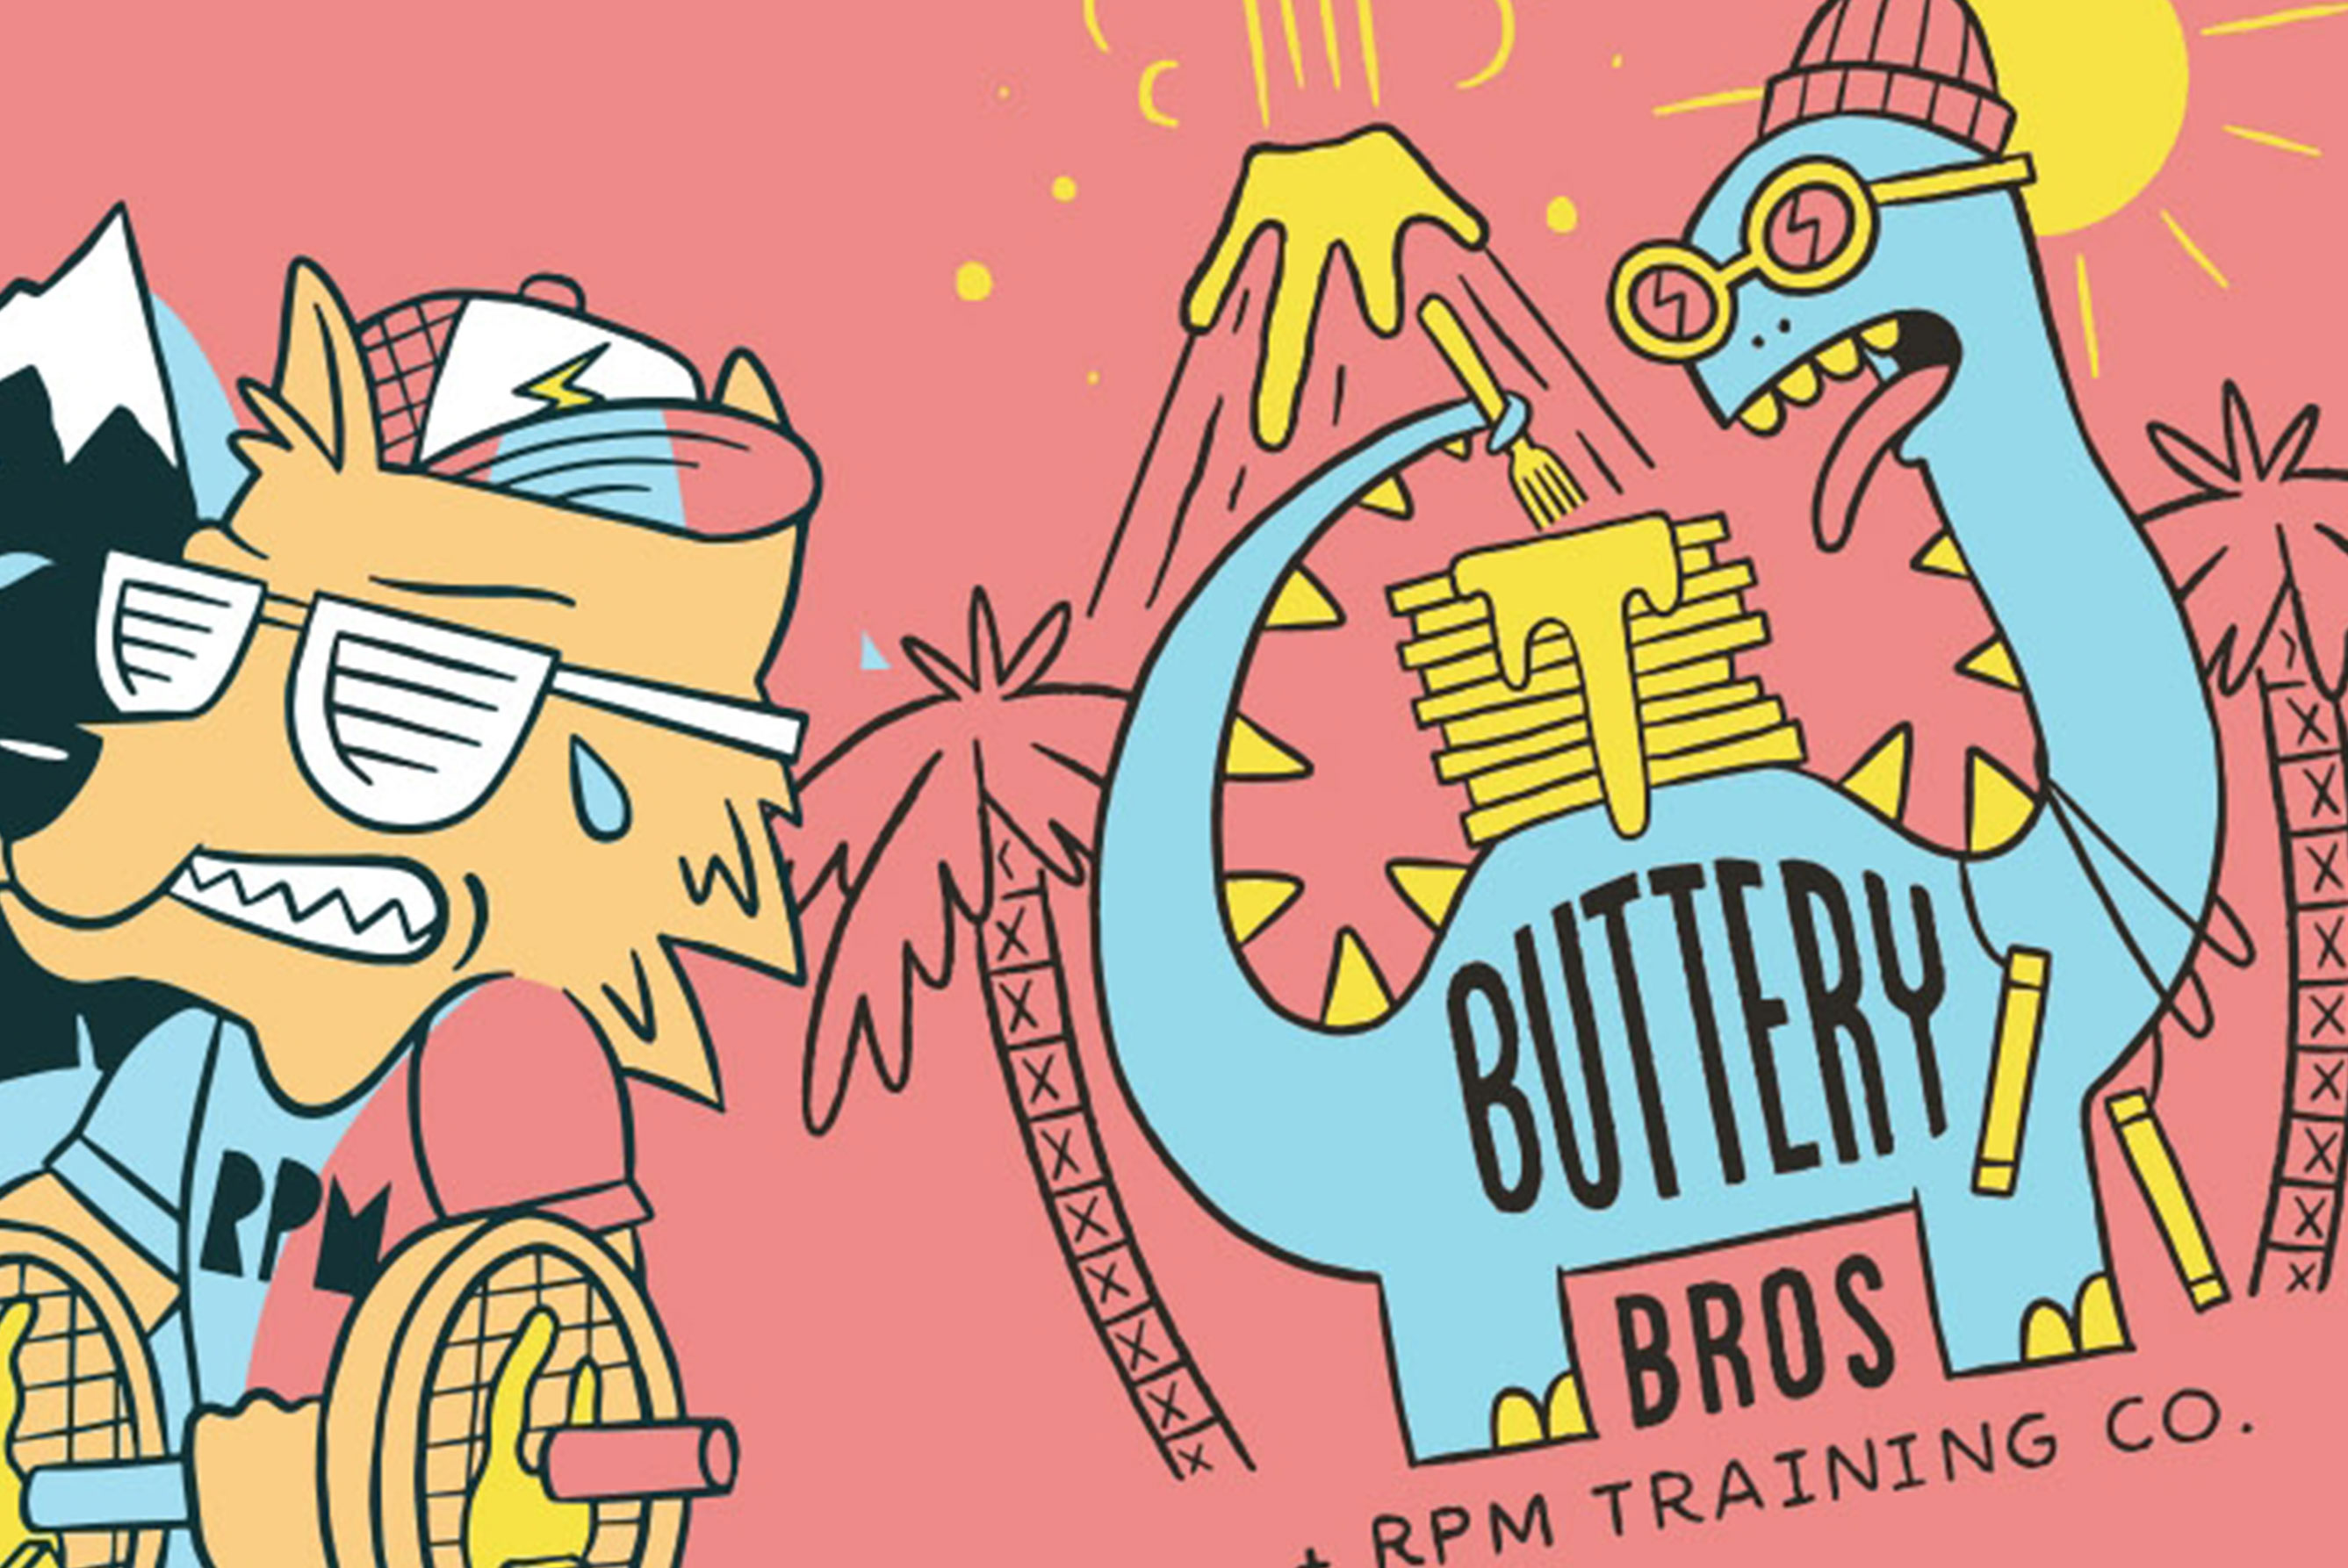 The Buttery Bros